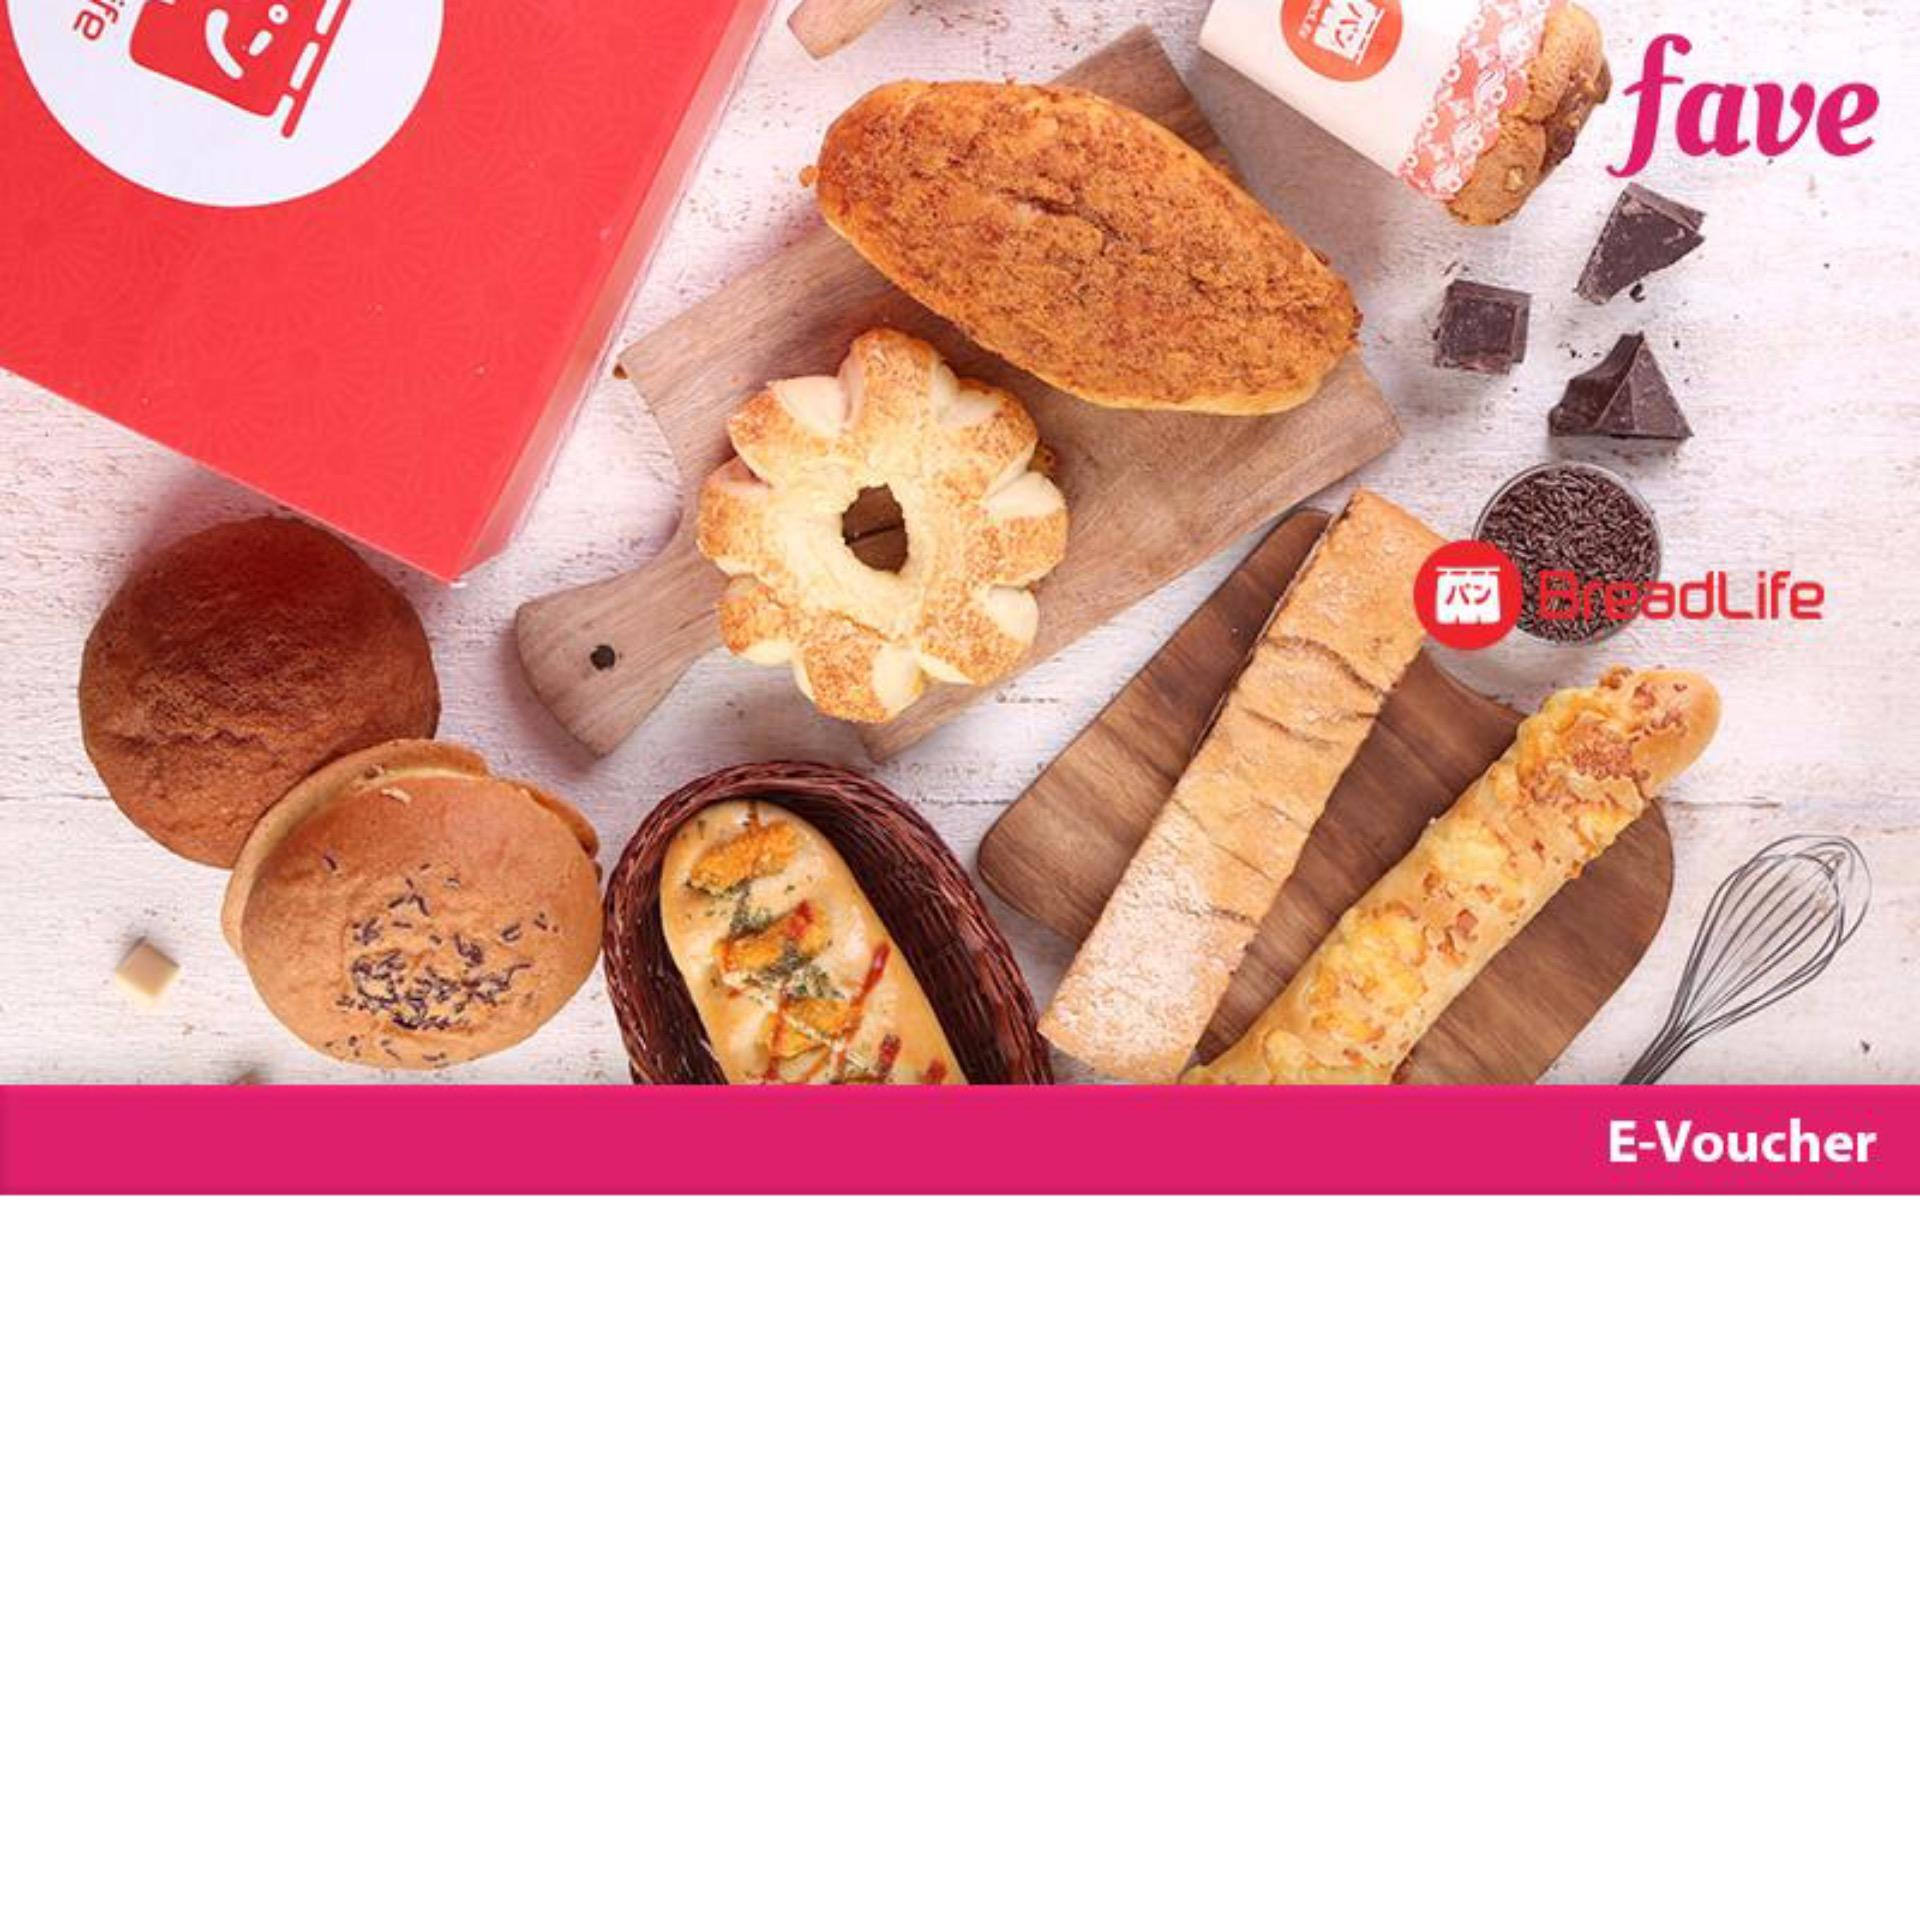 Breadlife Paket 3 Roti By Fave Indonesia.